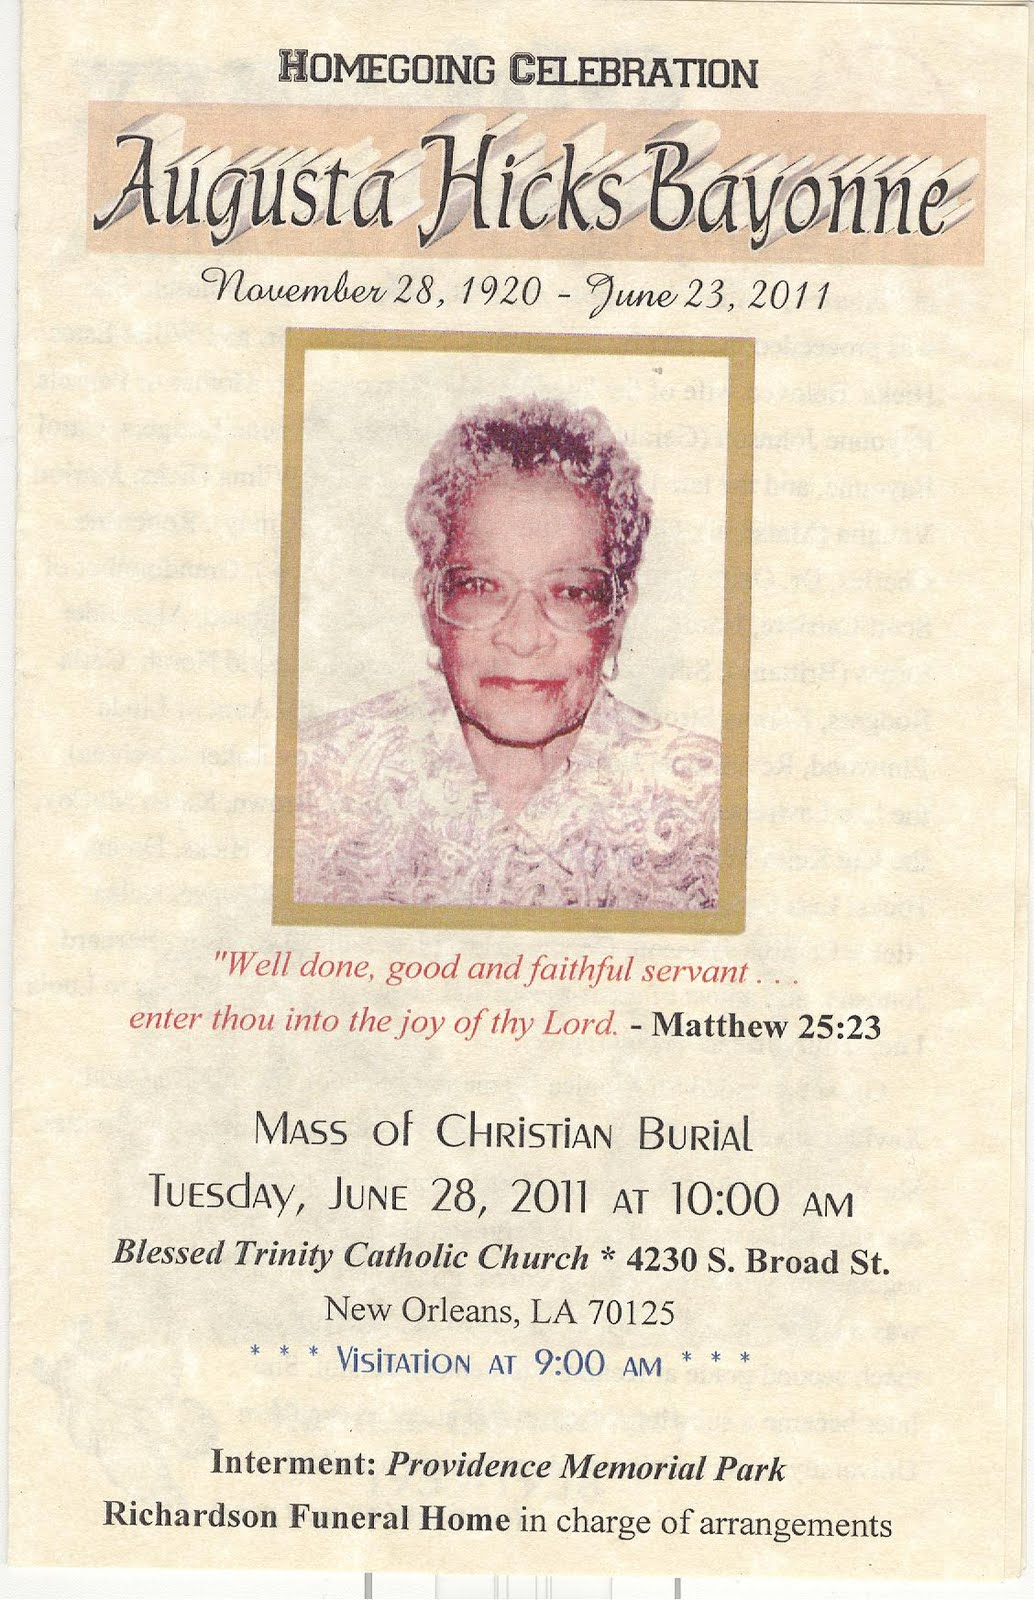 AFRICAN ROOTS Funeral Program for Augusta Hicks Bayonne